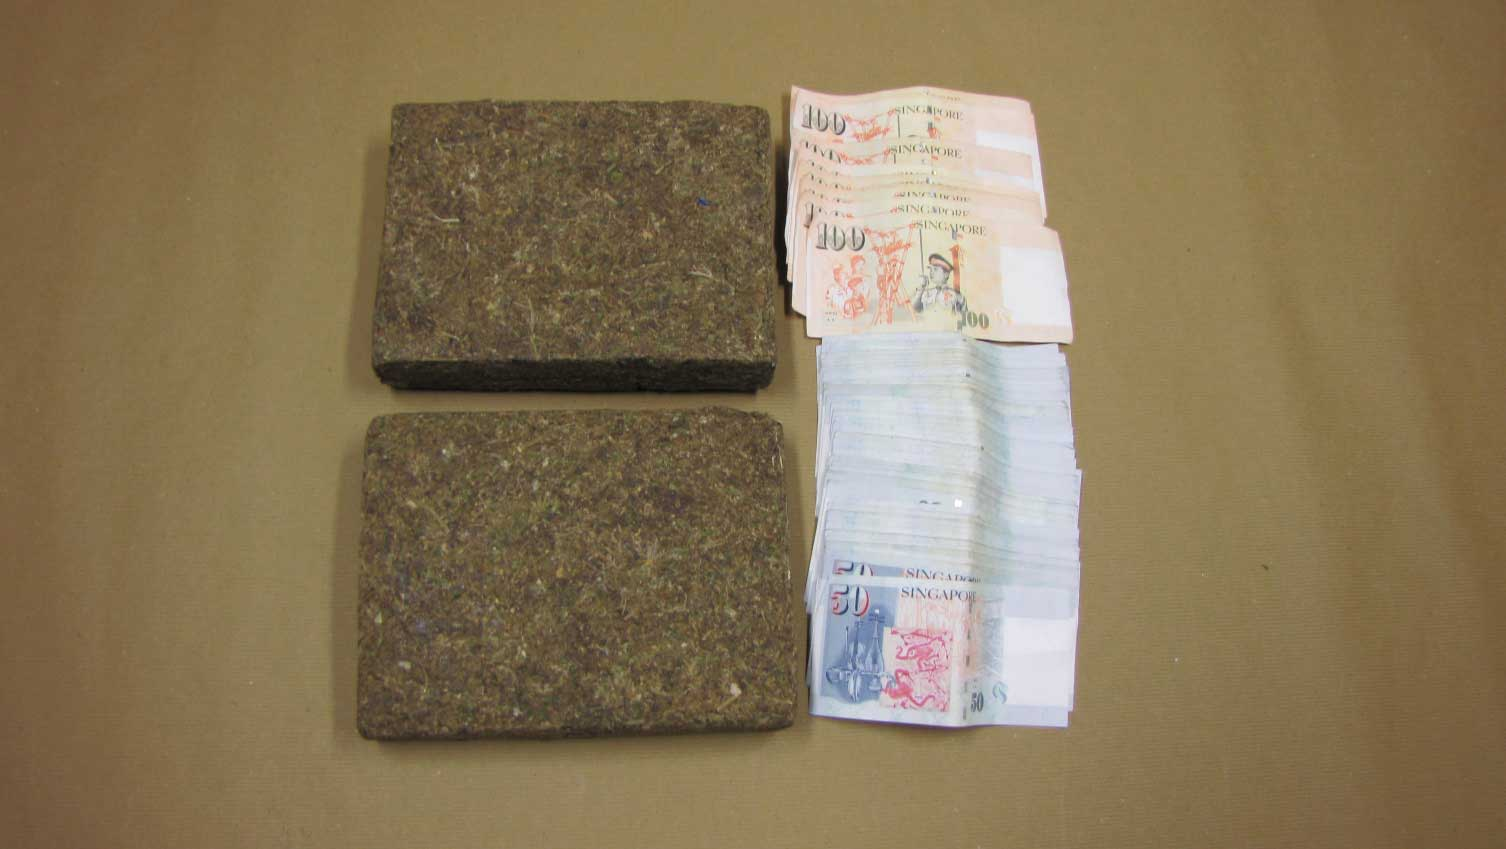 Photo 3: The cannabis and cash that was seized in CNB's operation on 26 Nov 2015